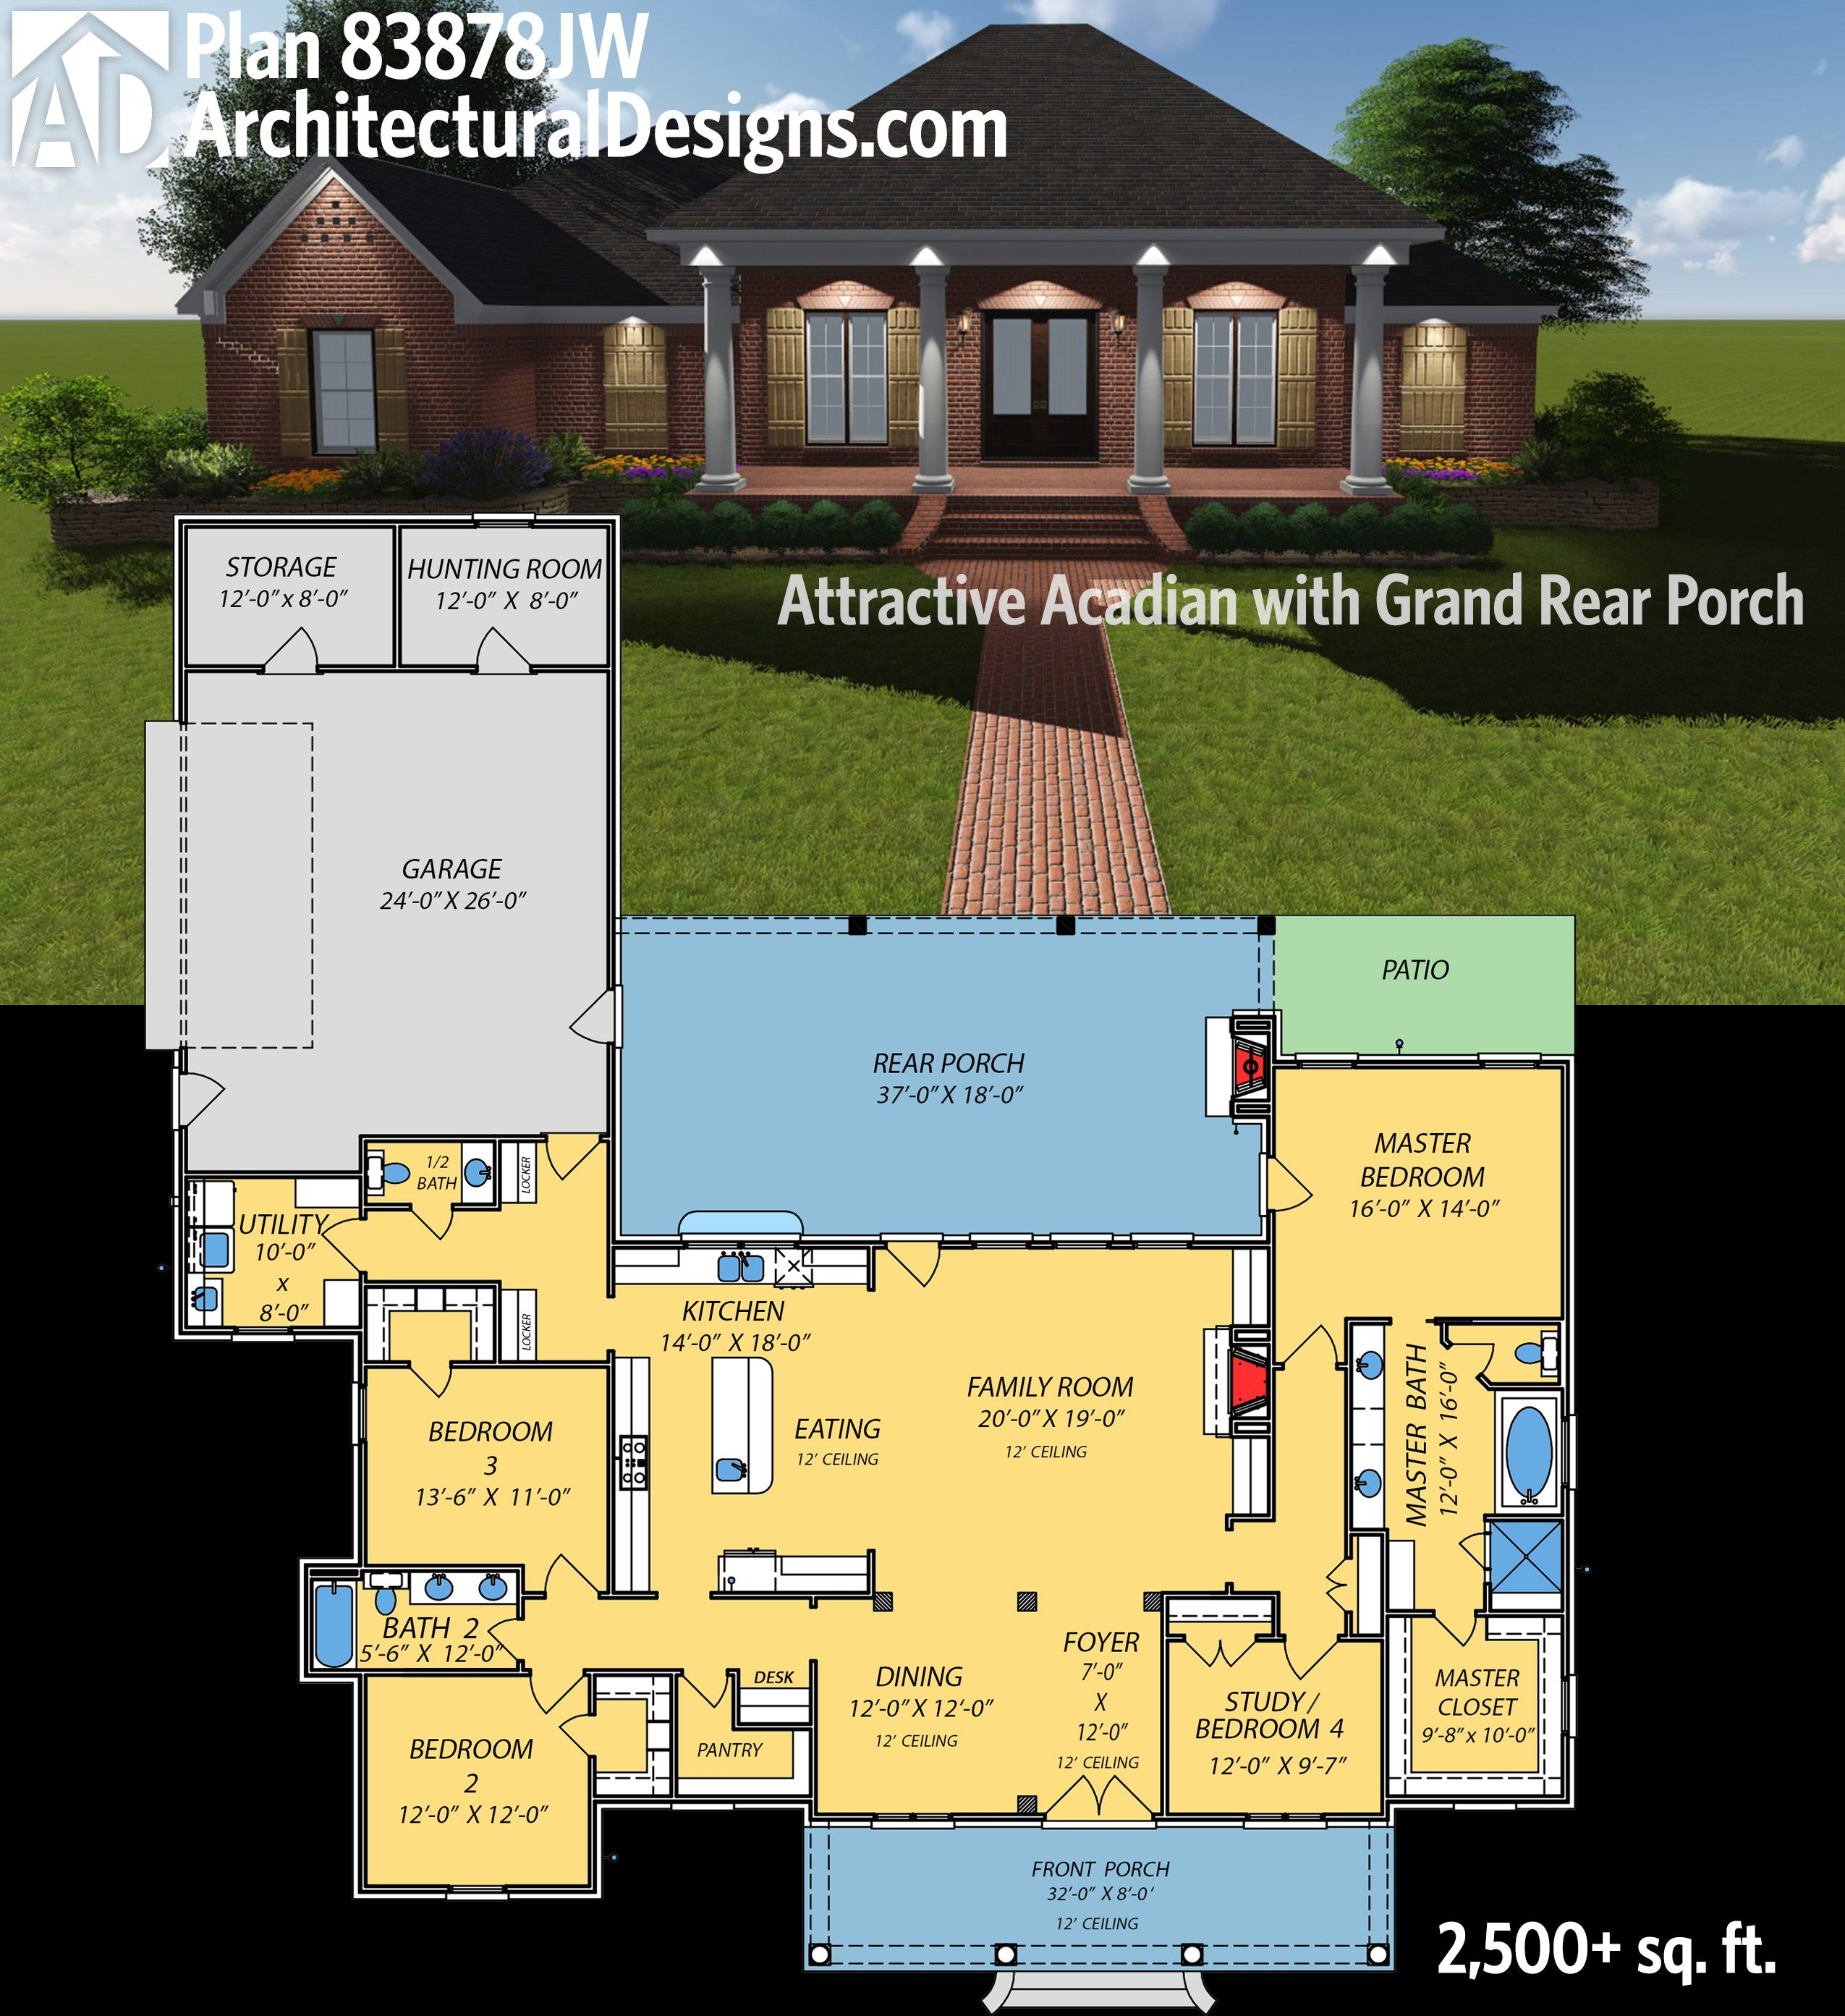 Plan 83878jw Attractive Acadian With Grand Rear Porch Acadian House Plans New House Plans House Plans